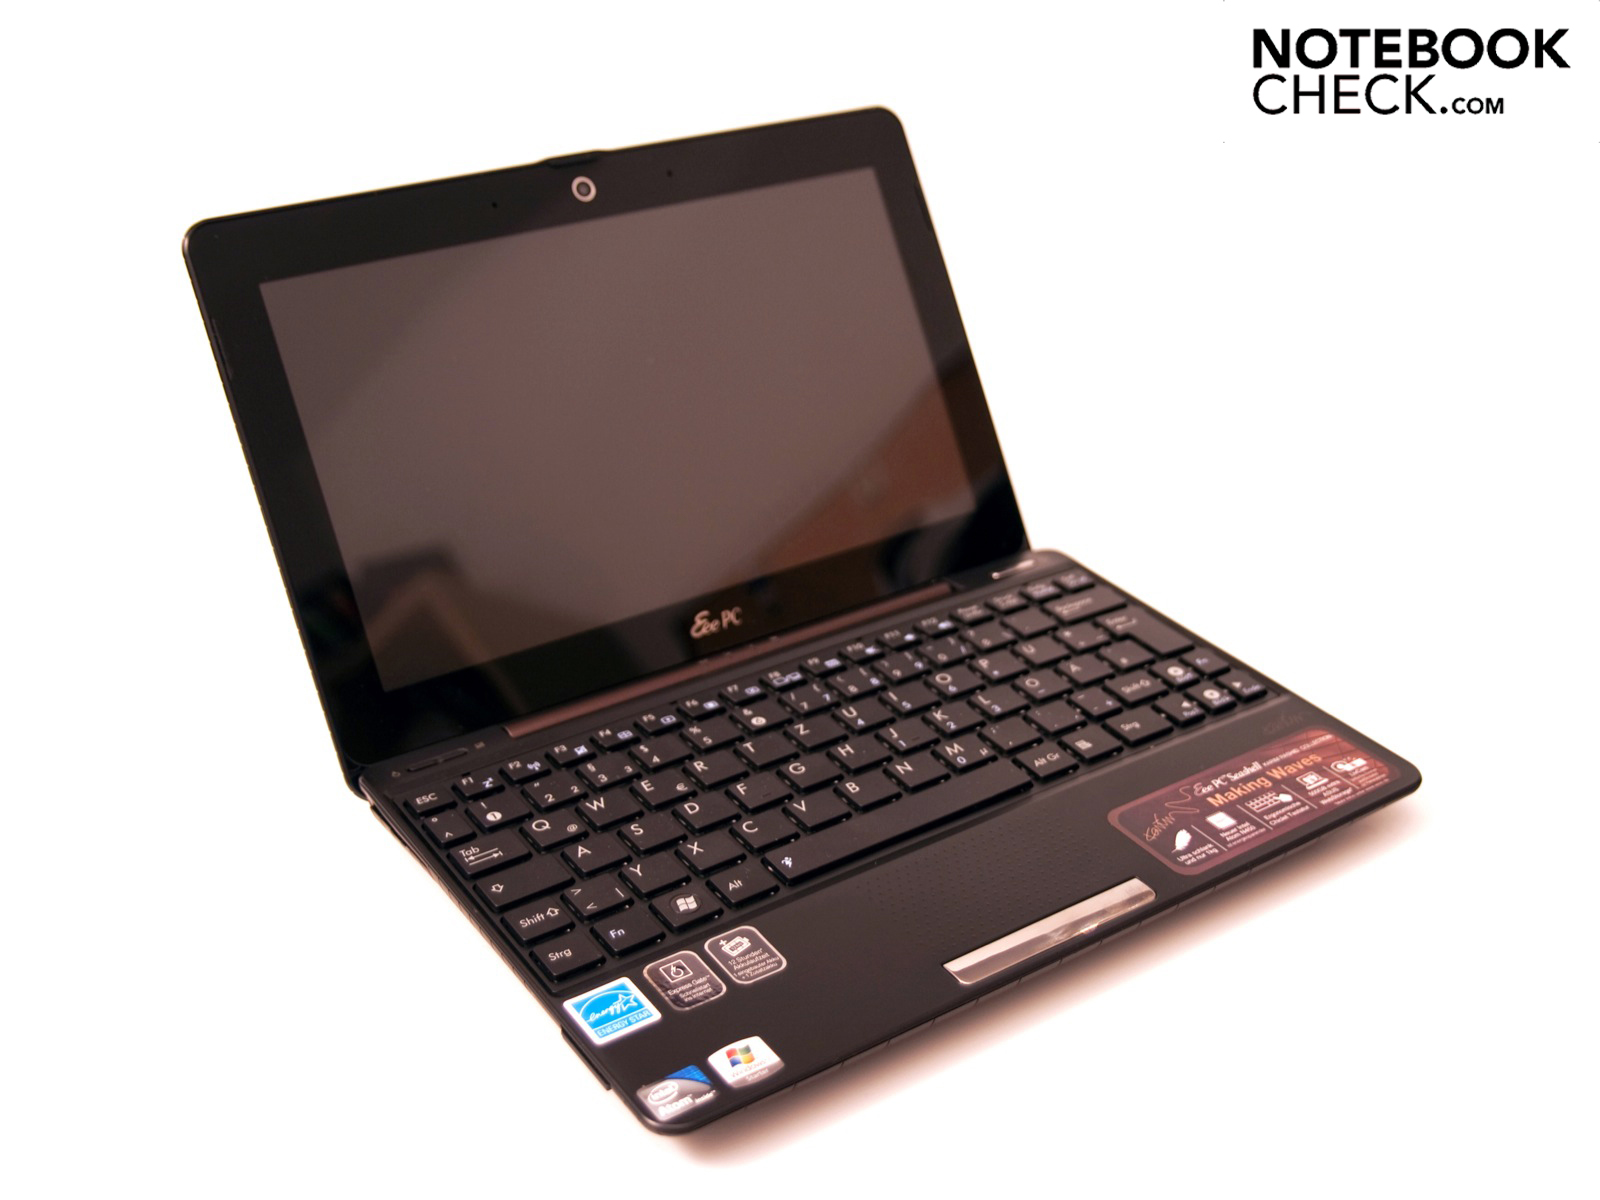 Review Asus Eee Pc 1008p Netbook Notebookcheck Net Reviews